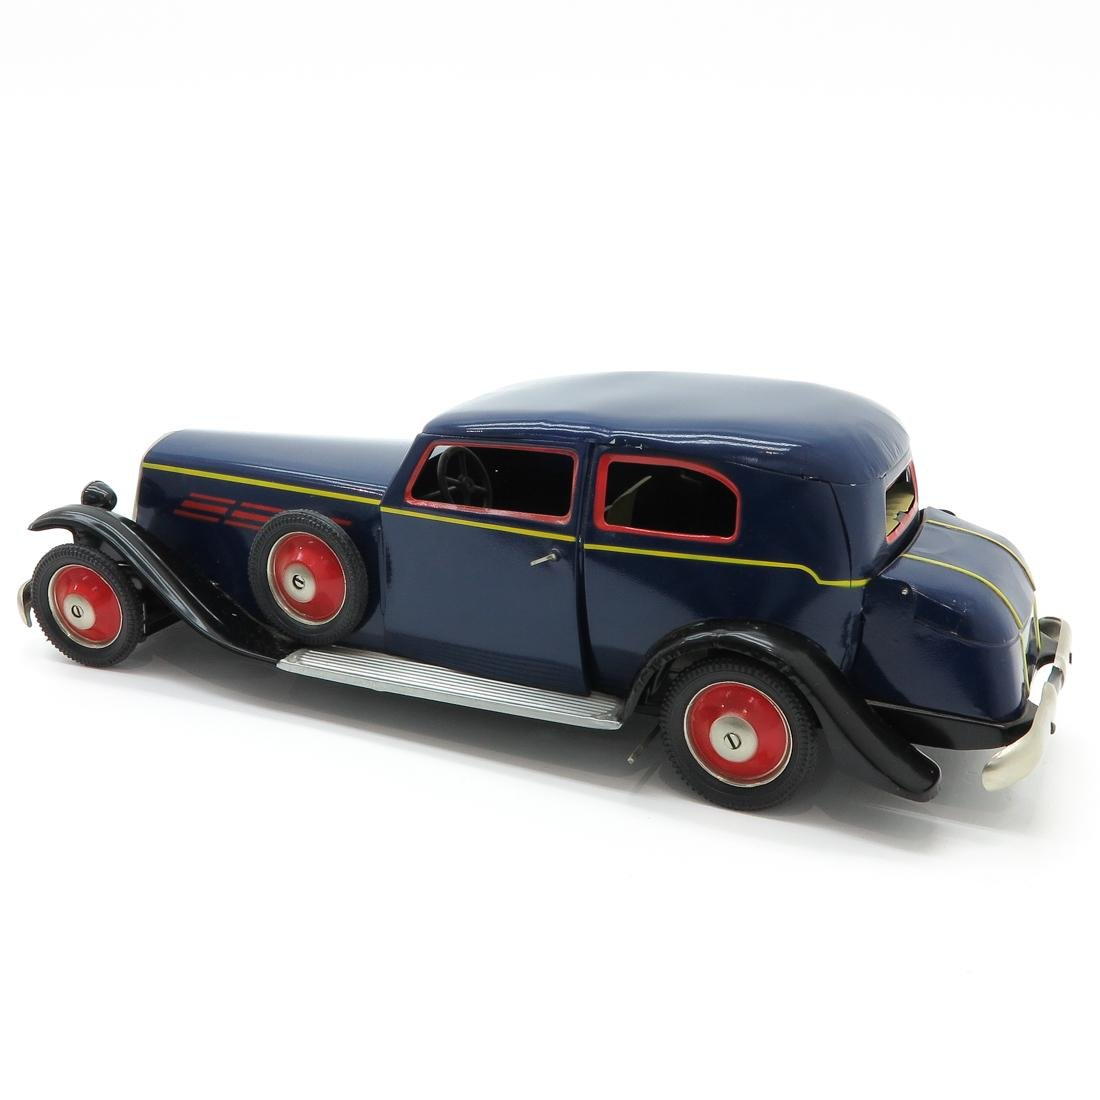 Jaguete Paya 1935 Toy Car - 3